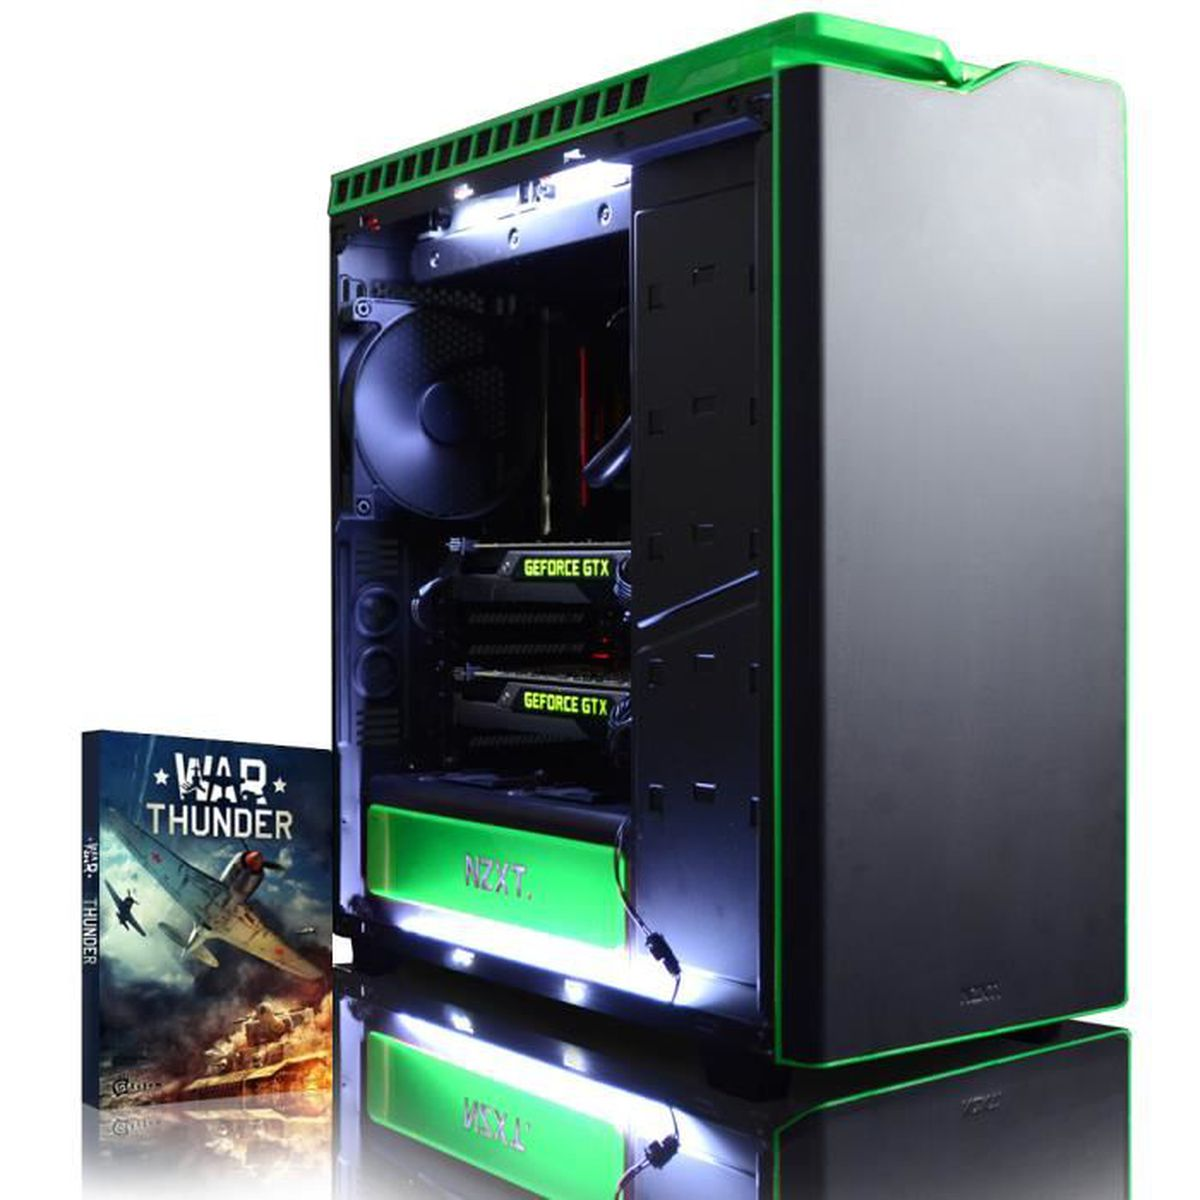 UNITÉ CENTRALE  VIBOX Legend 32 PC Gamer - Intel 8-Core, 2x GTX 10